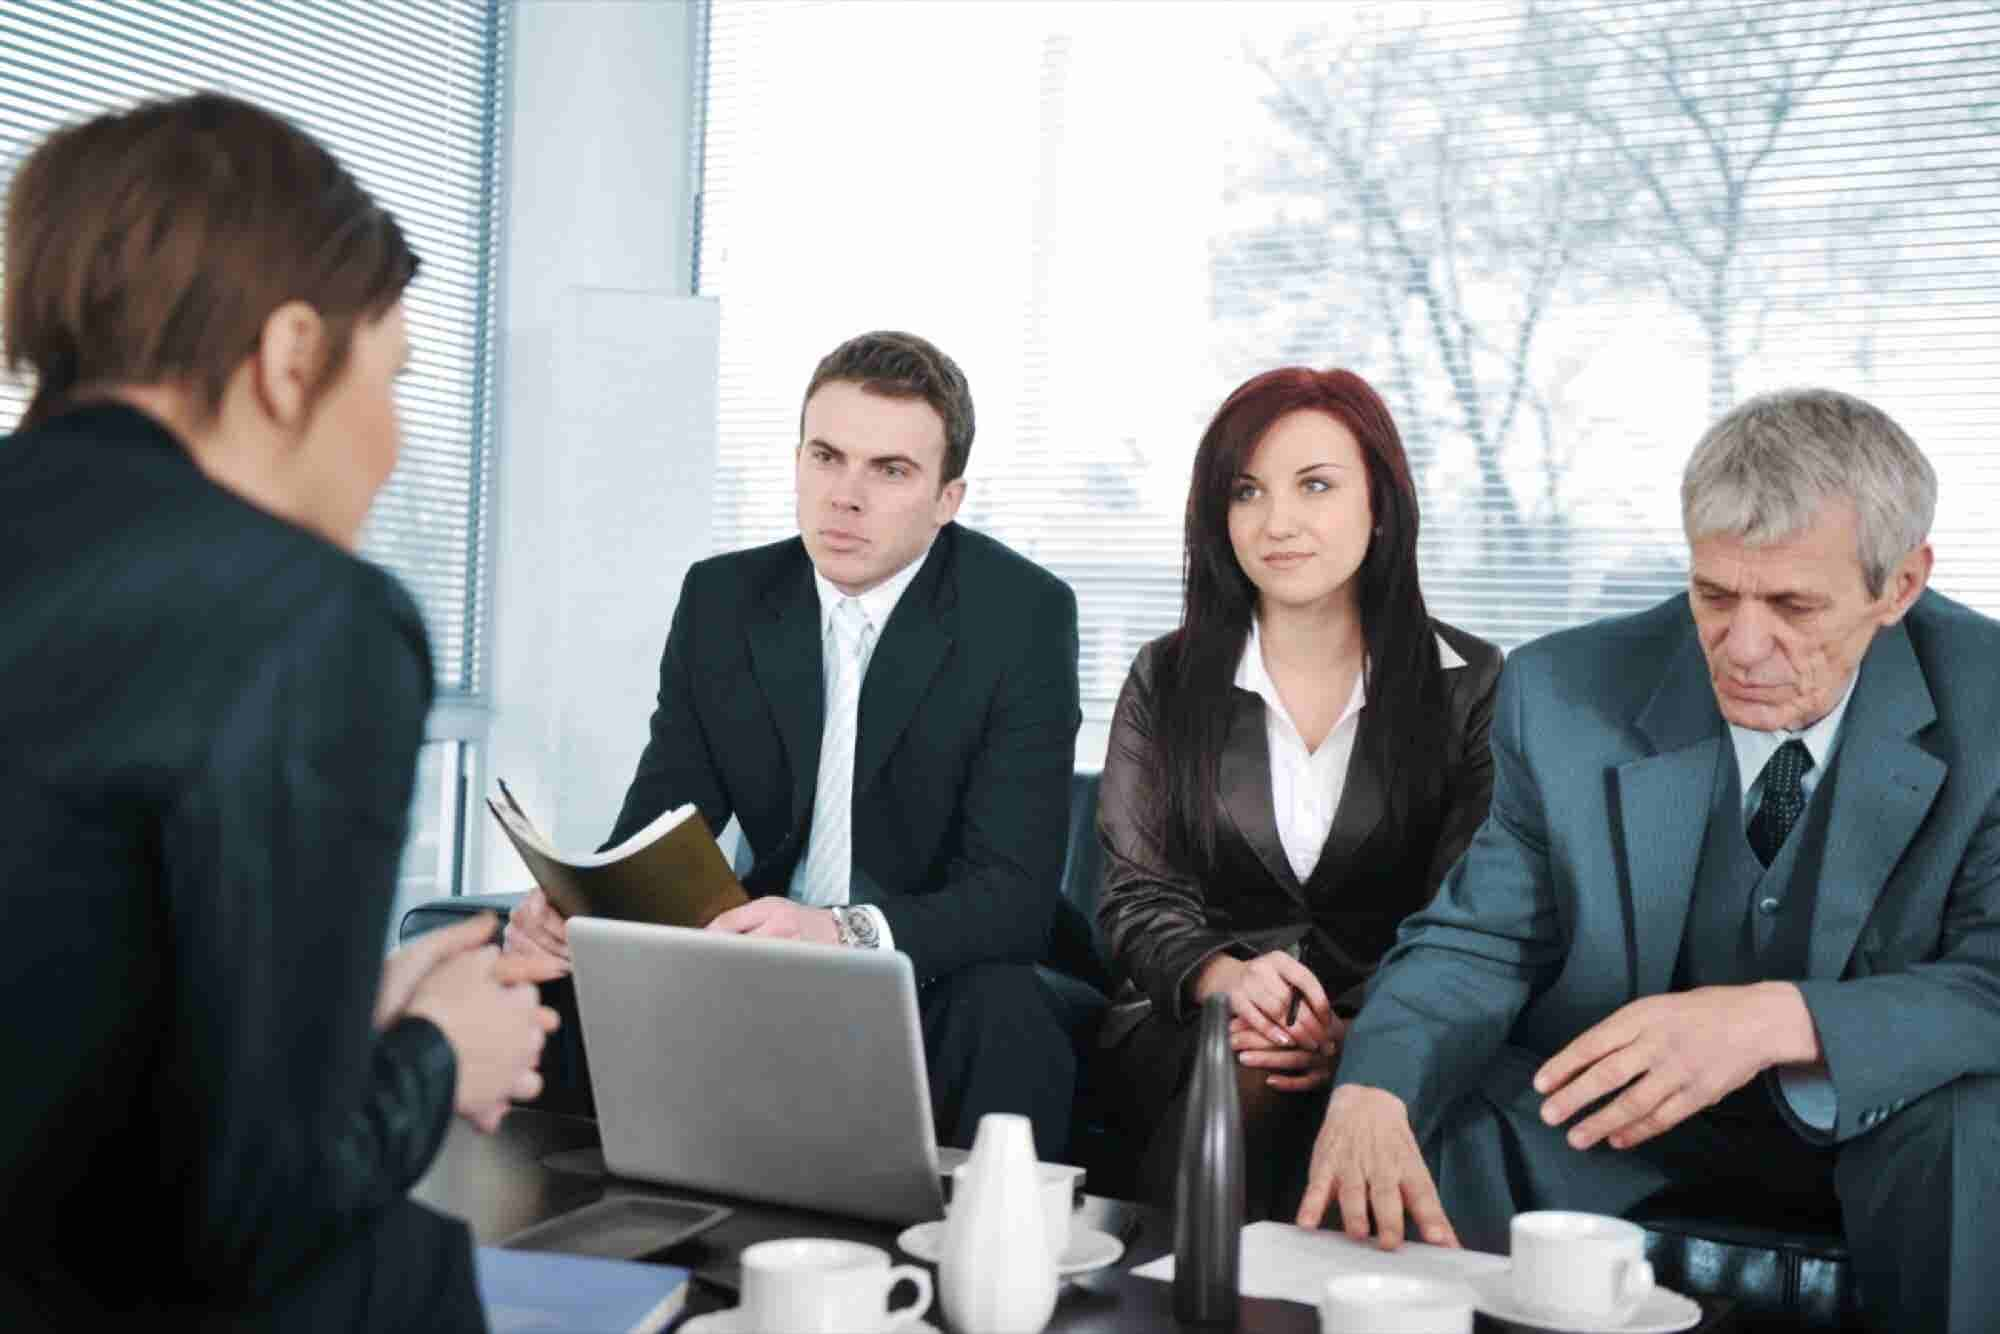 5 Things One Should Keep in Mind While Joining the Family Business